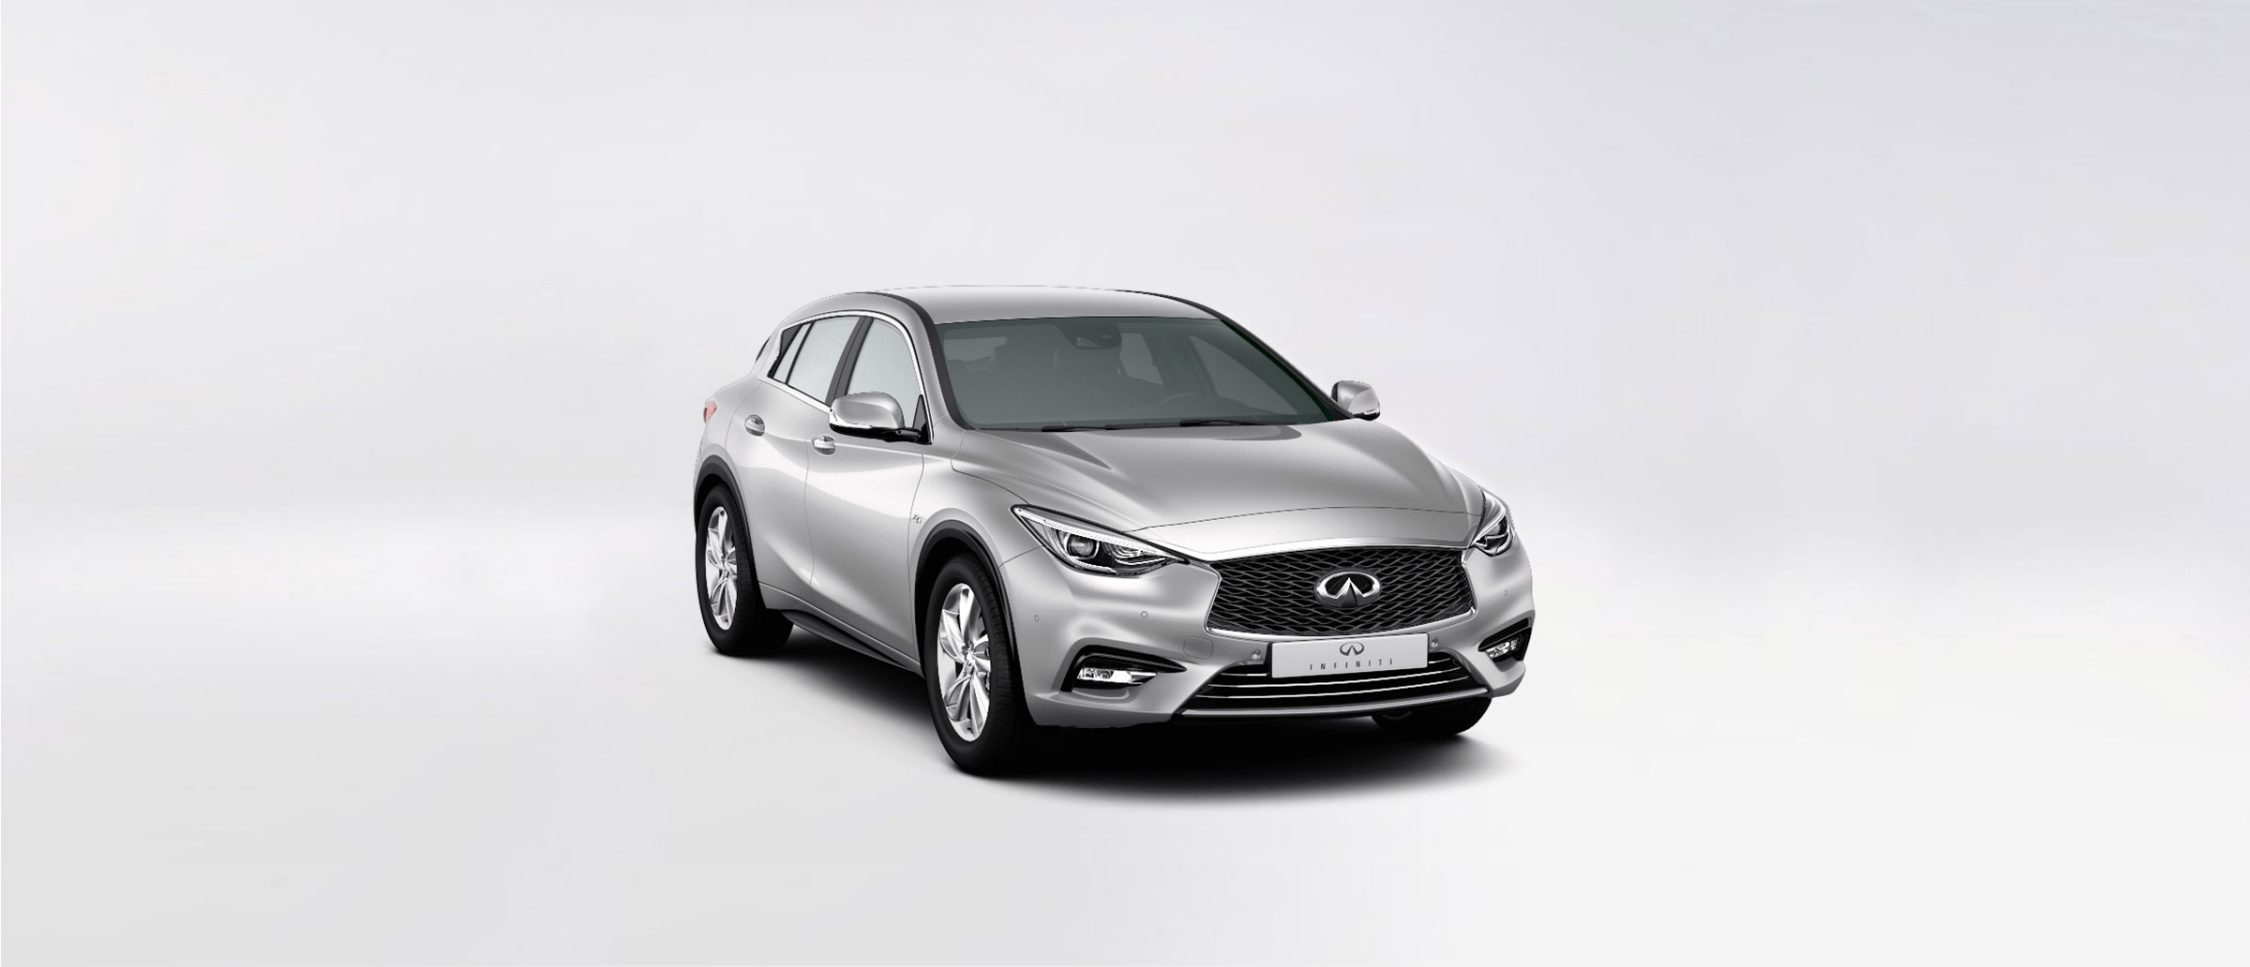 infinity drive expert of infiniti crossover test review